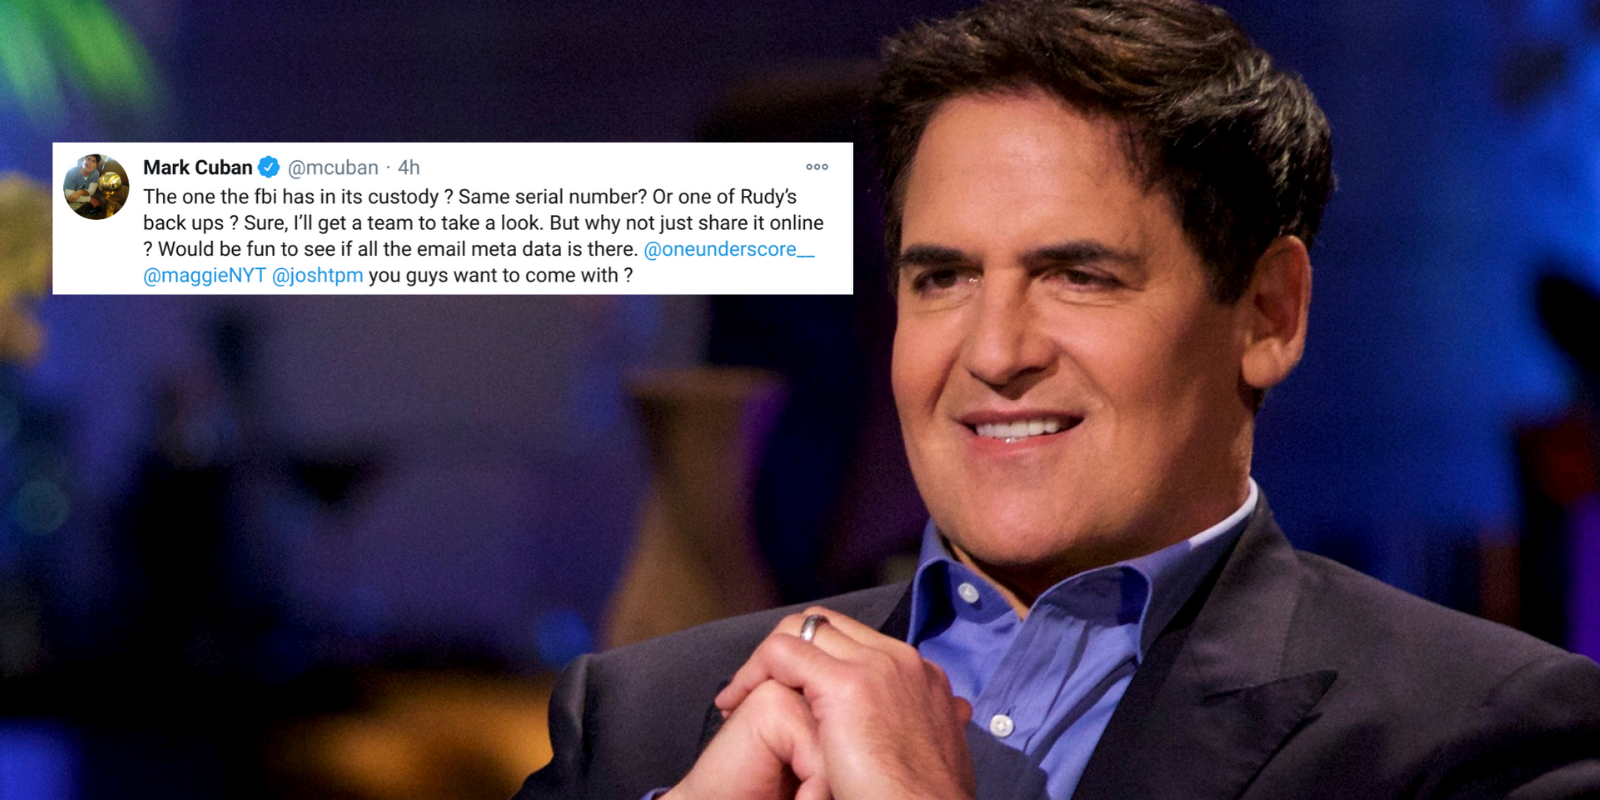 Mark Cuban accepts offer to view contents of Hunter Biden's laptop